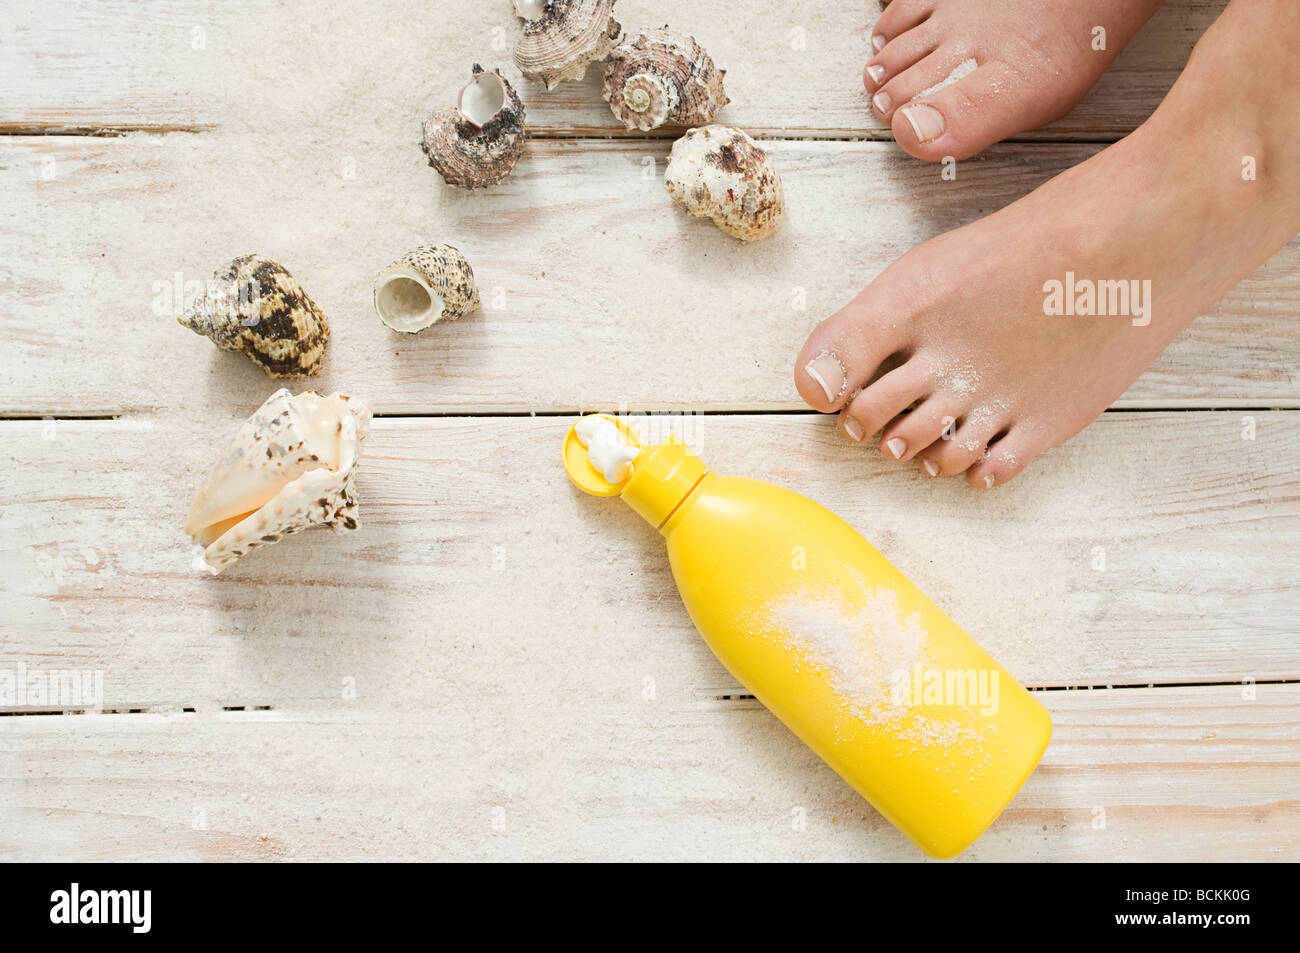 Female feet with shells and suncream - Stock Image